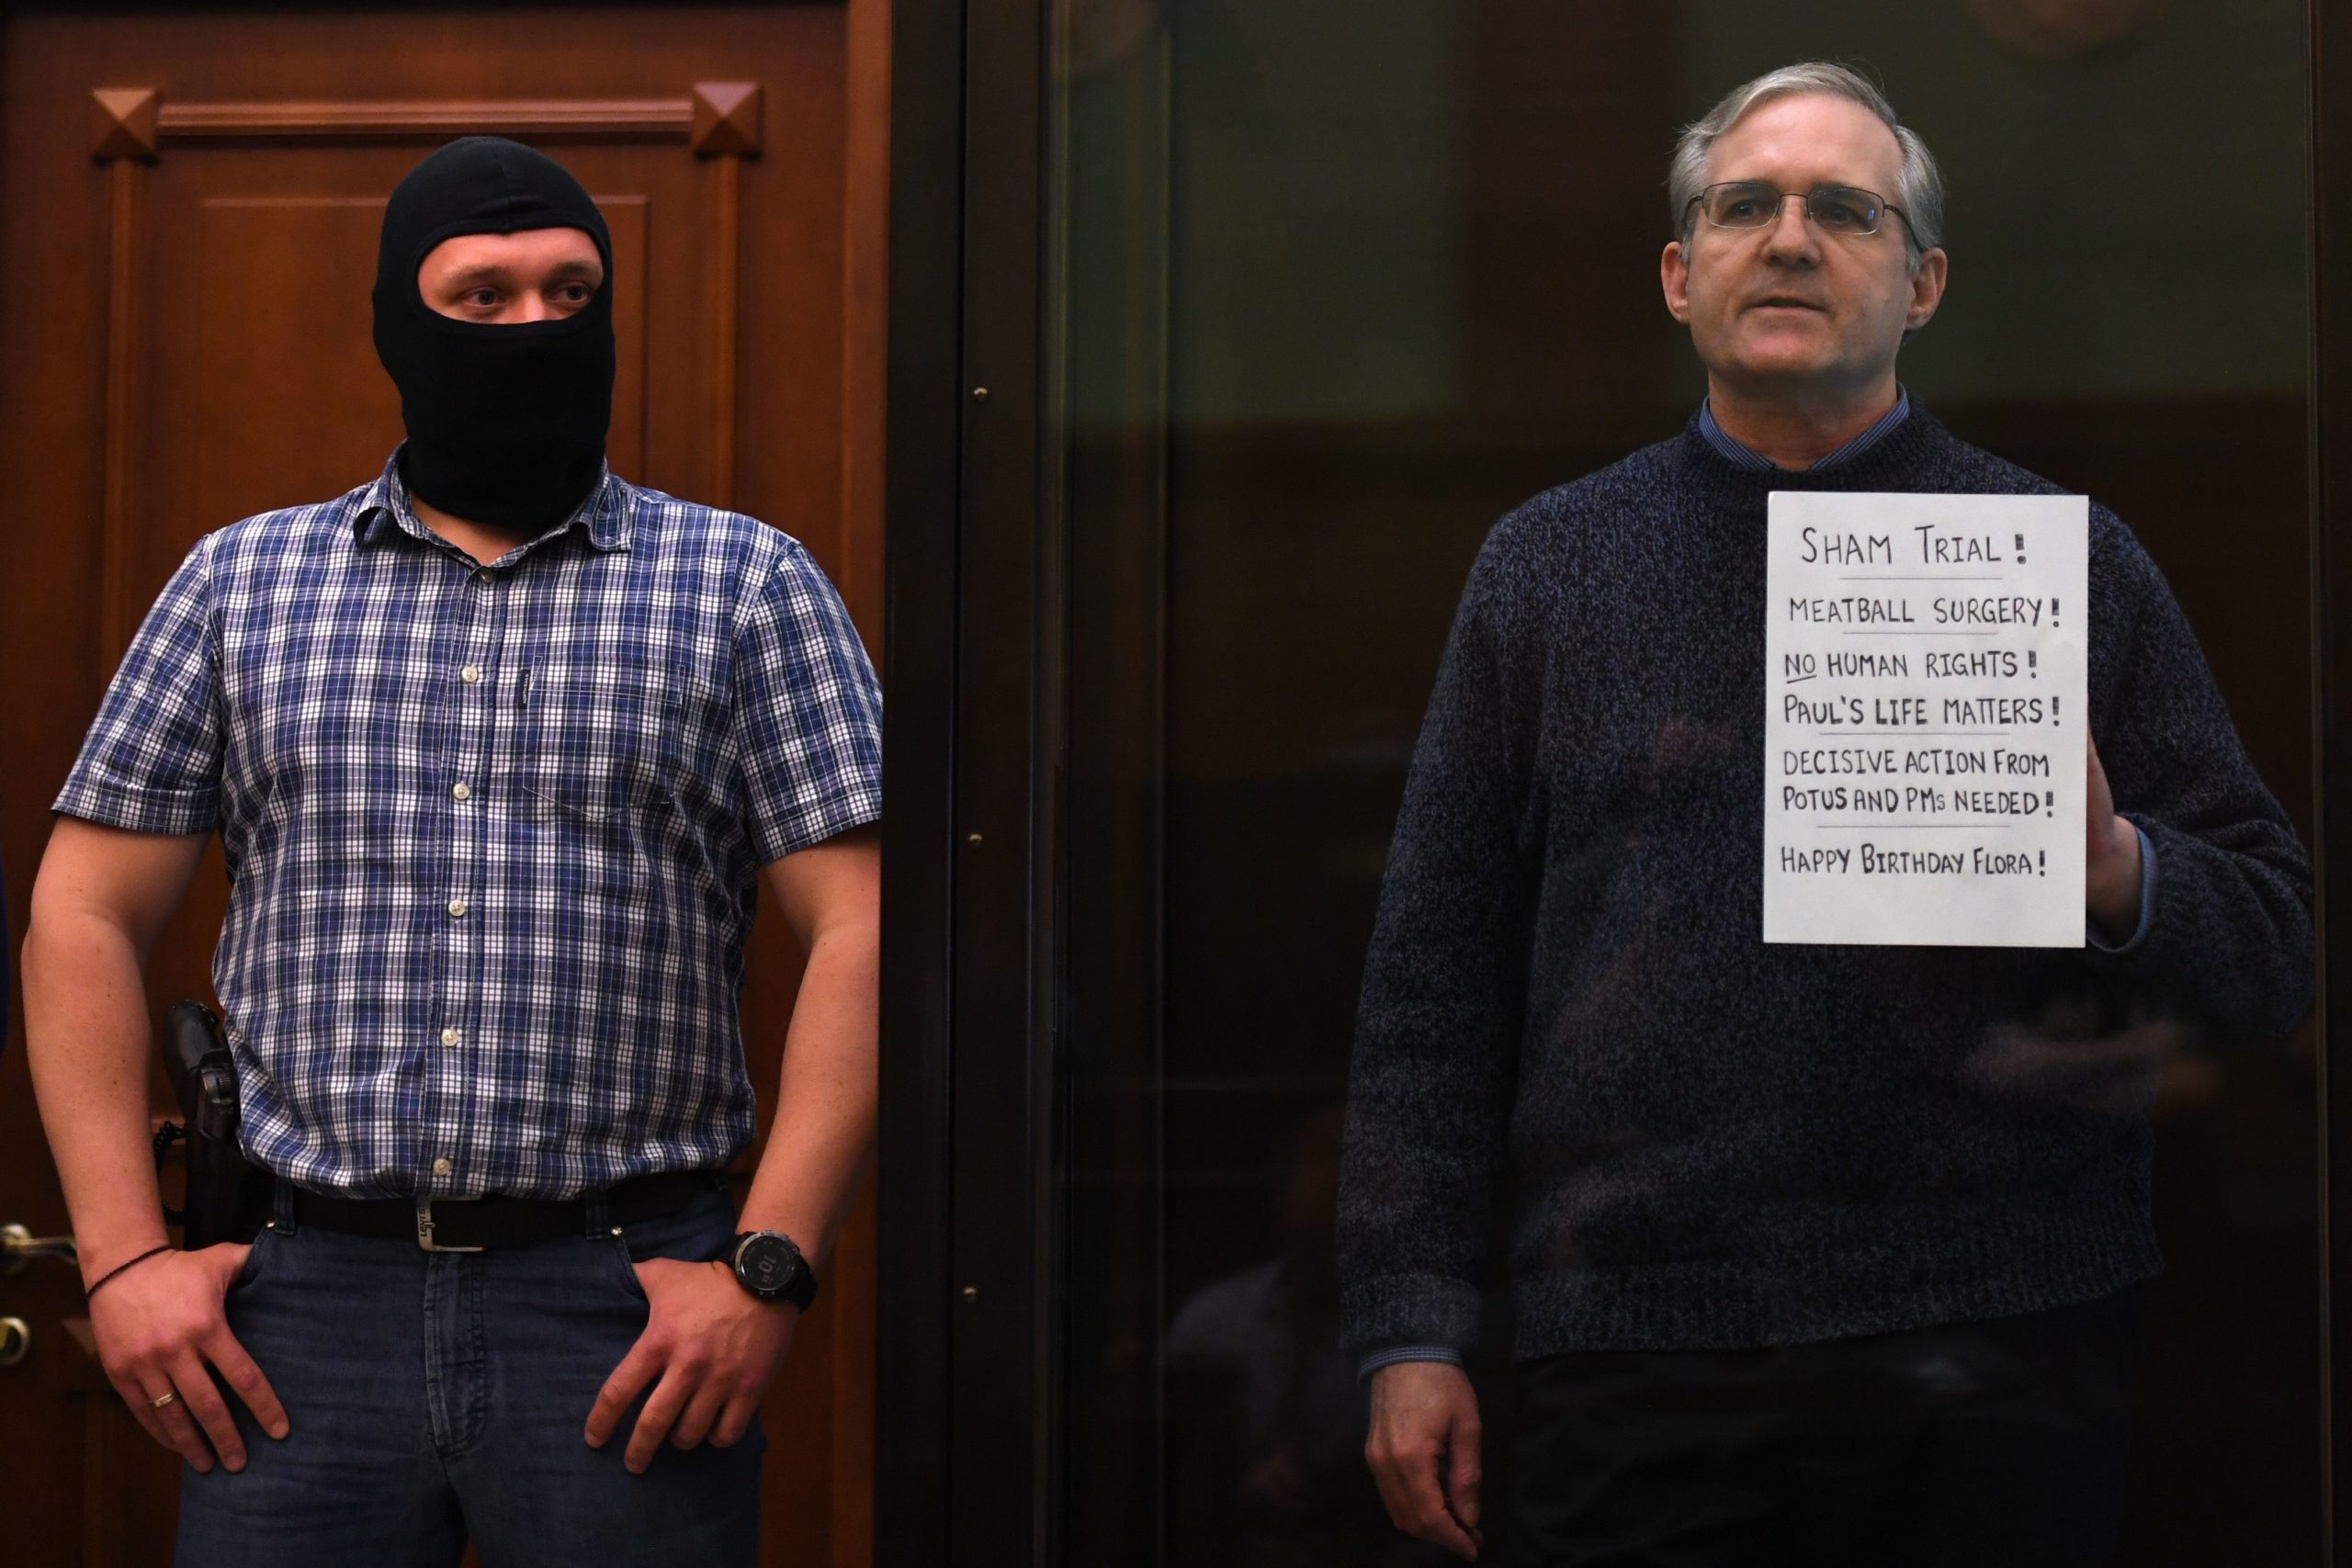 Paul Whelan stands inside a defendants' cage as he waits to hear the verdict of his case in a Moscow, Russia court on June 15, 2020. (Kirill Kudryavtsev/AFP via Getty Images)